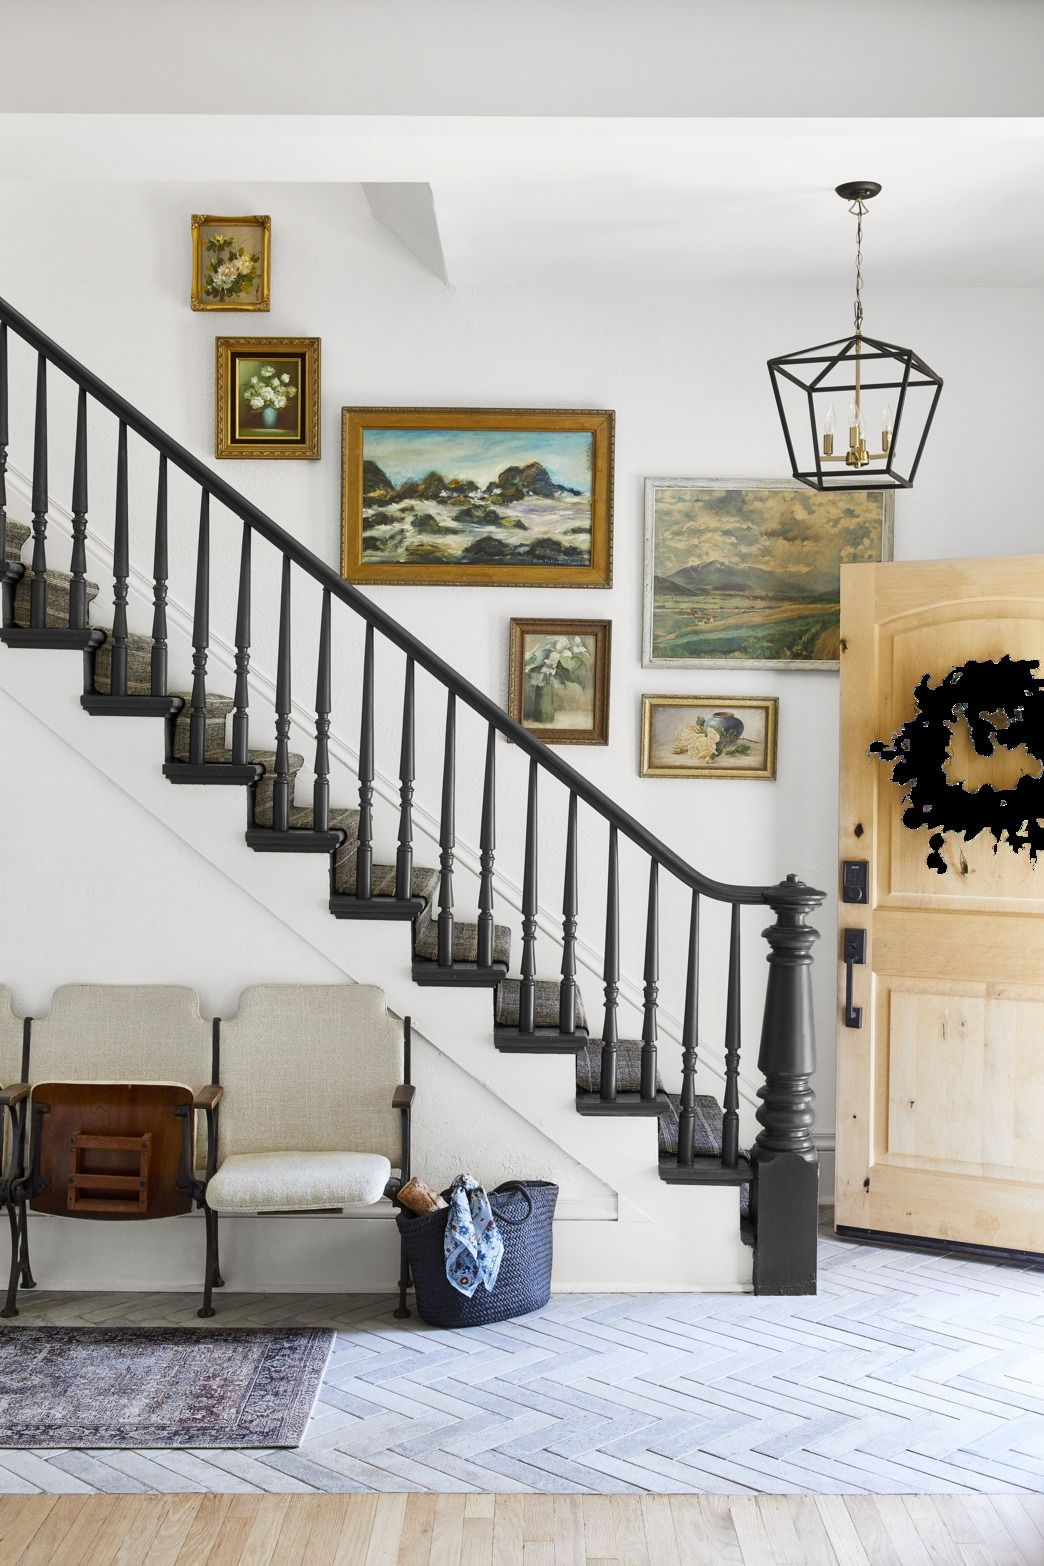 55 Best Staircase Ideas Top Ways To Decorate A Stairway | Modern Staircase Window Design | Architecture | Small House Stair | Section Window | Elegant | Wooden